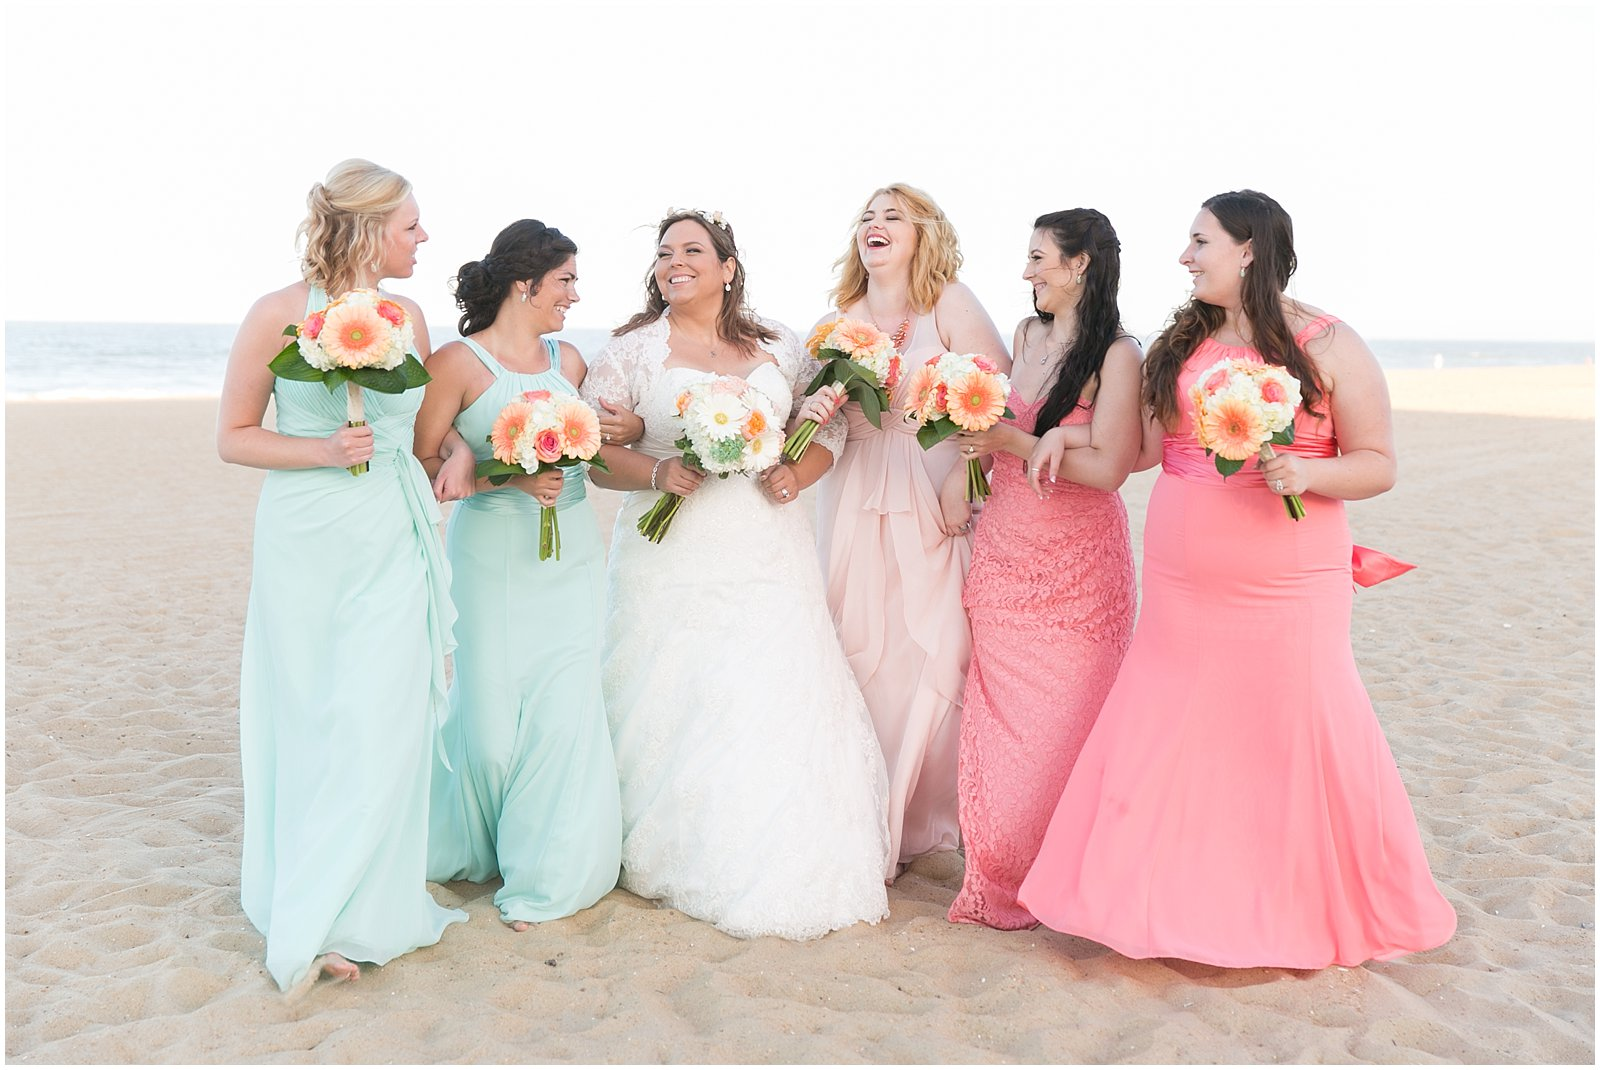 jessica_ryan_photography_wedding_virginia_beach_virginia_wedding_photographer_candid_wedding_photography_lifestyle_photojournalistic_real_moments_0091